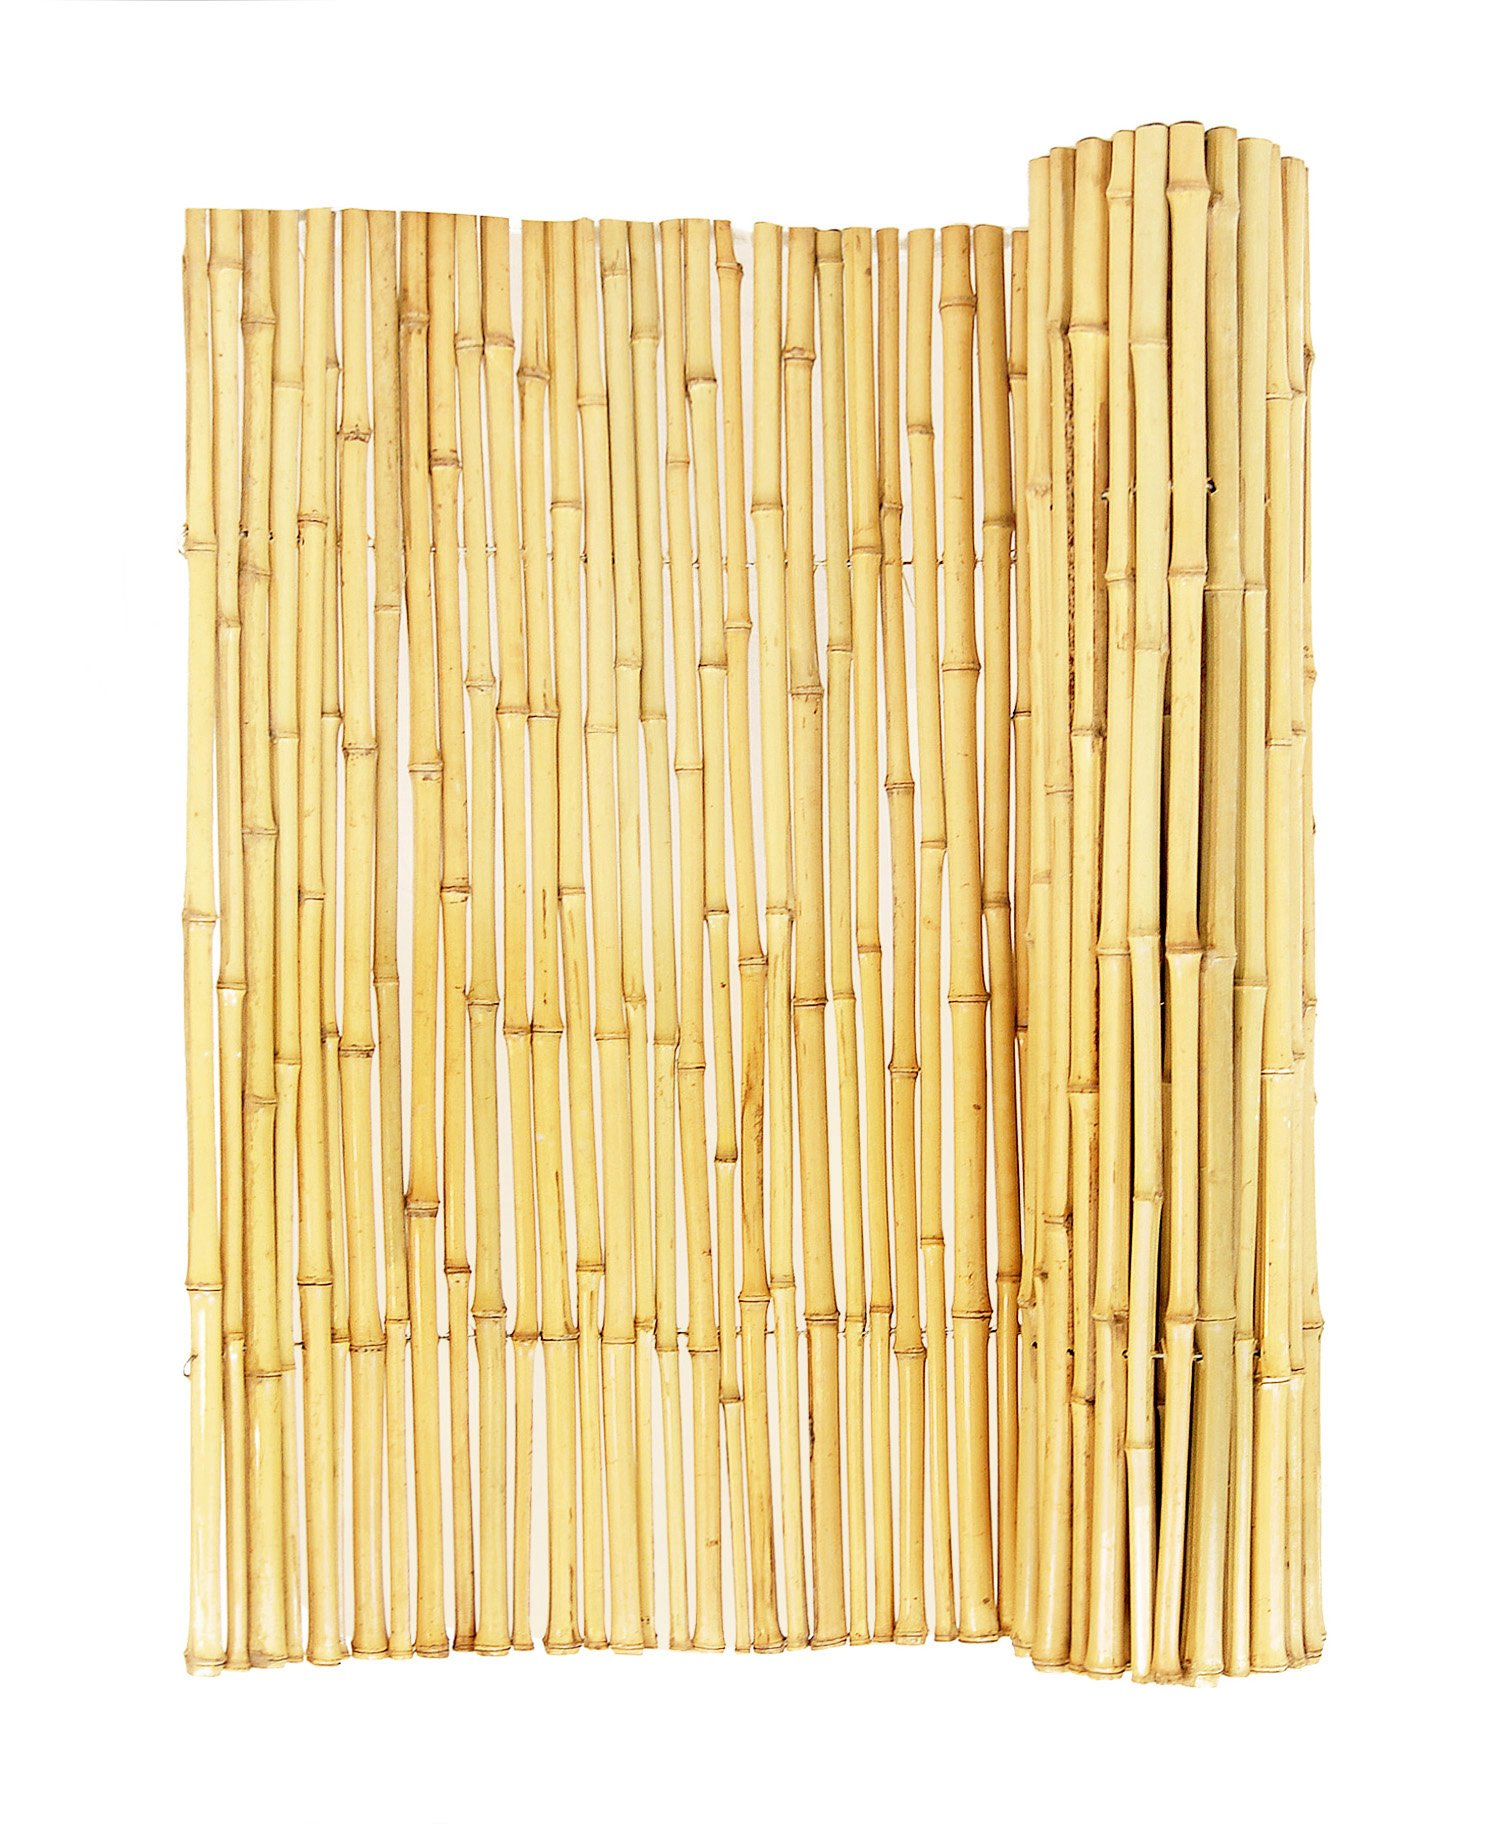 FOREVER BAMBOO Natural Rolled Bamboo Fence .75in D x 6ft H x 8ft L